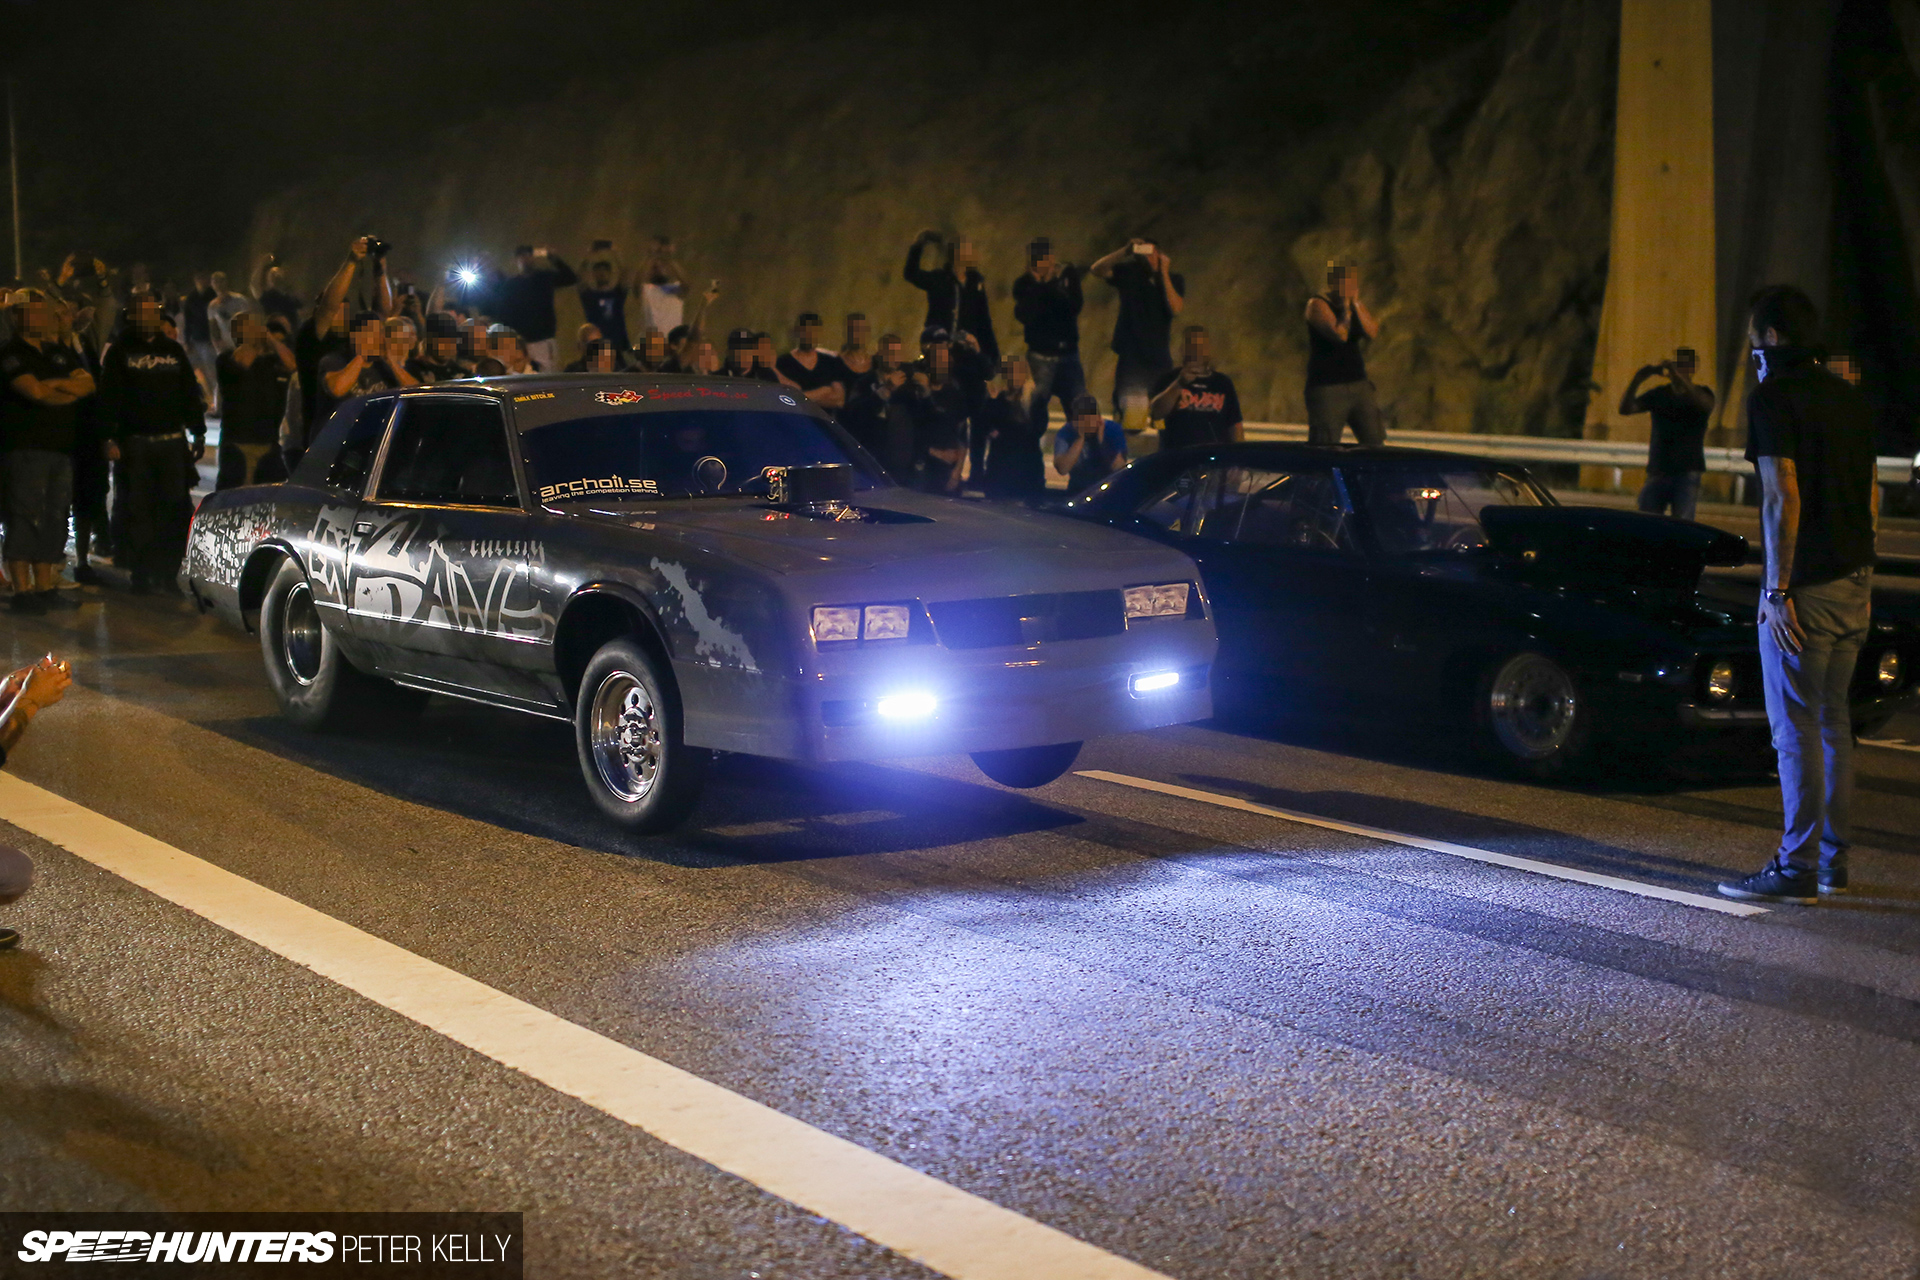 Street Car Racing: Street Racing In Stockholm: Welcome To The Underground